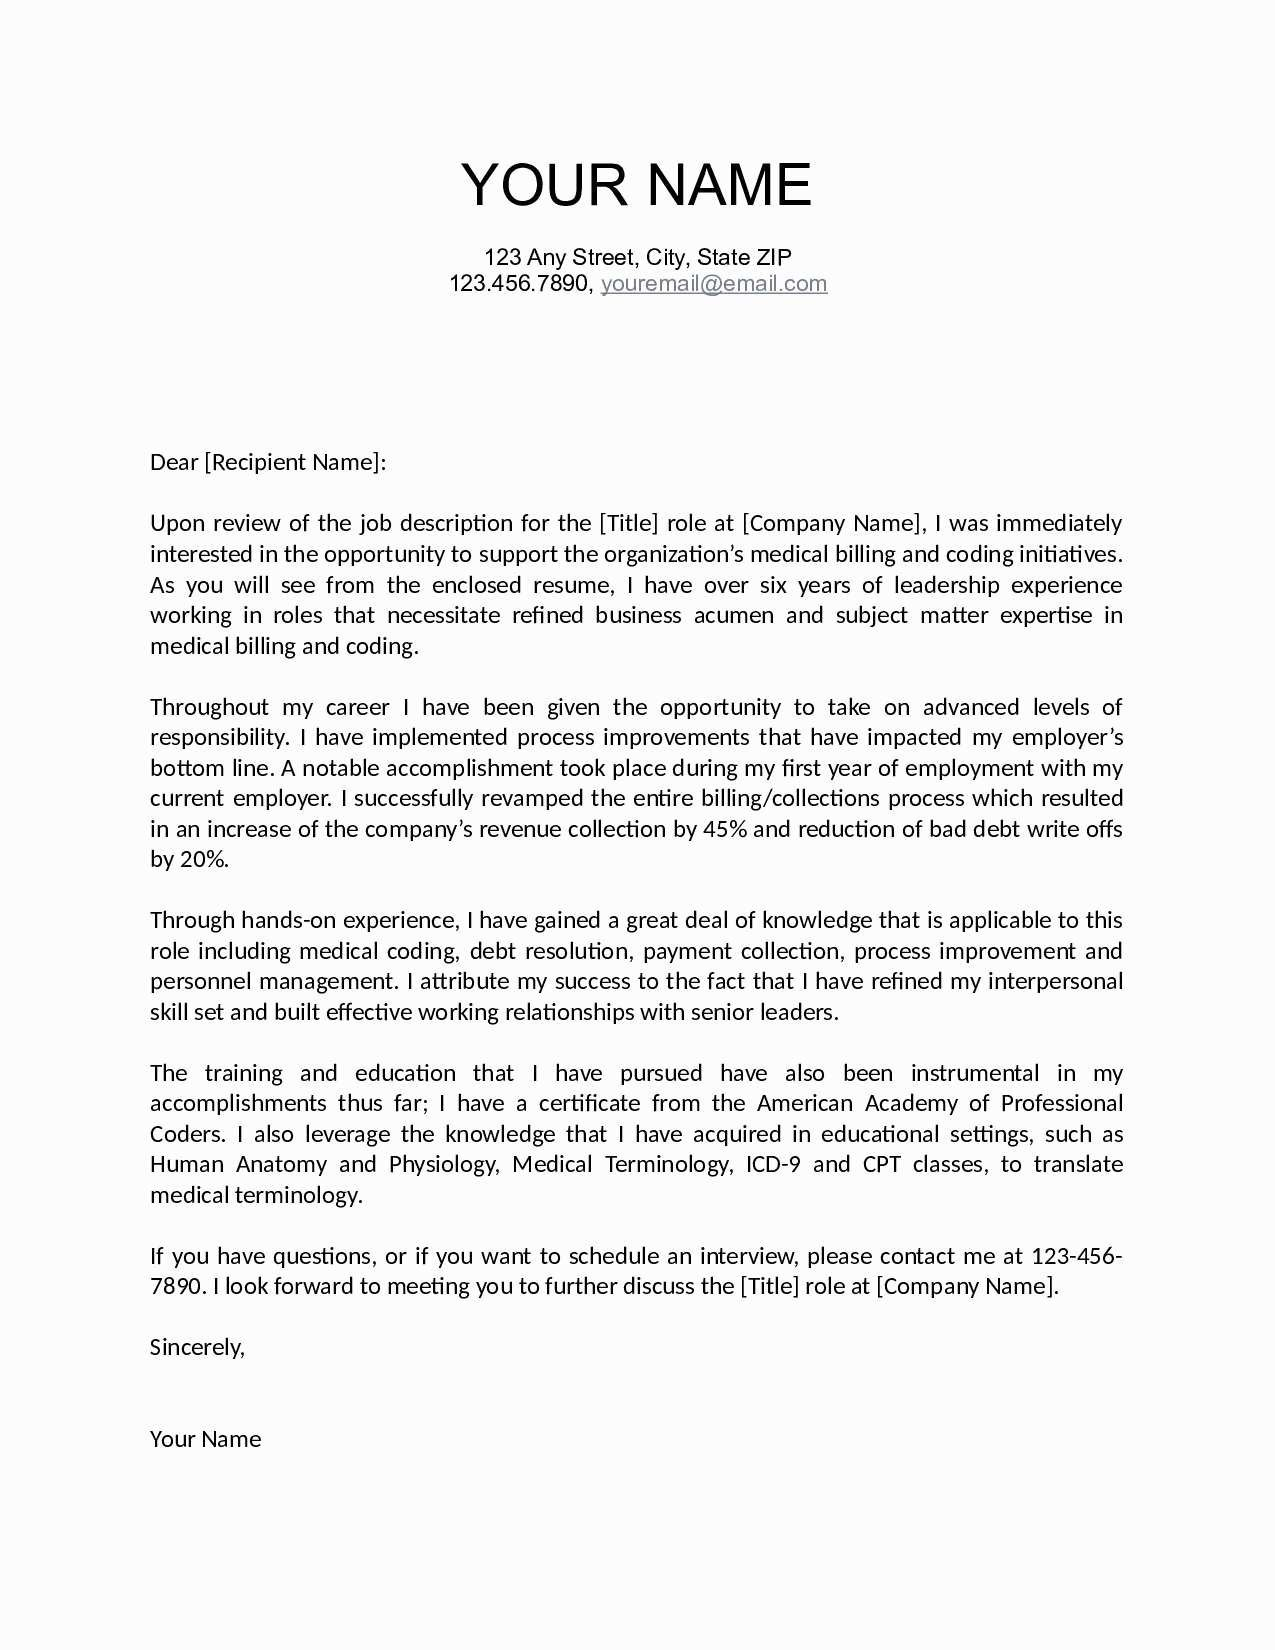 Collection Letter Template for Medical Office - Resume and Cover Letter Template Inspirational Beautiful Resume and